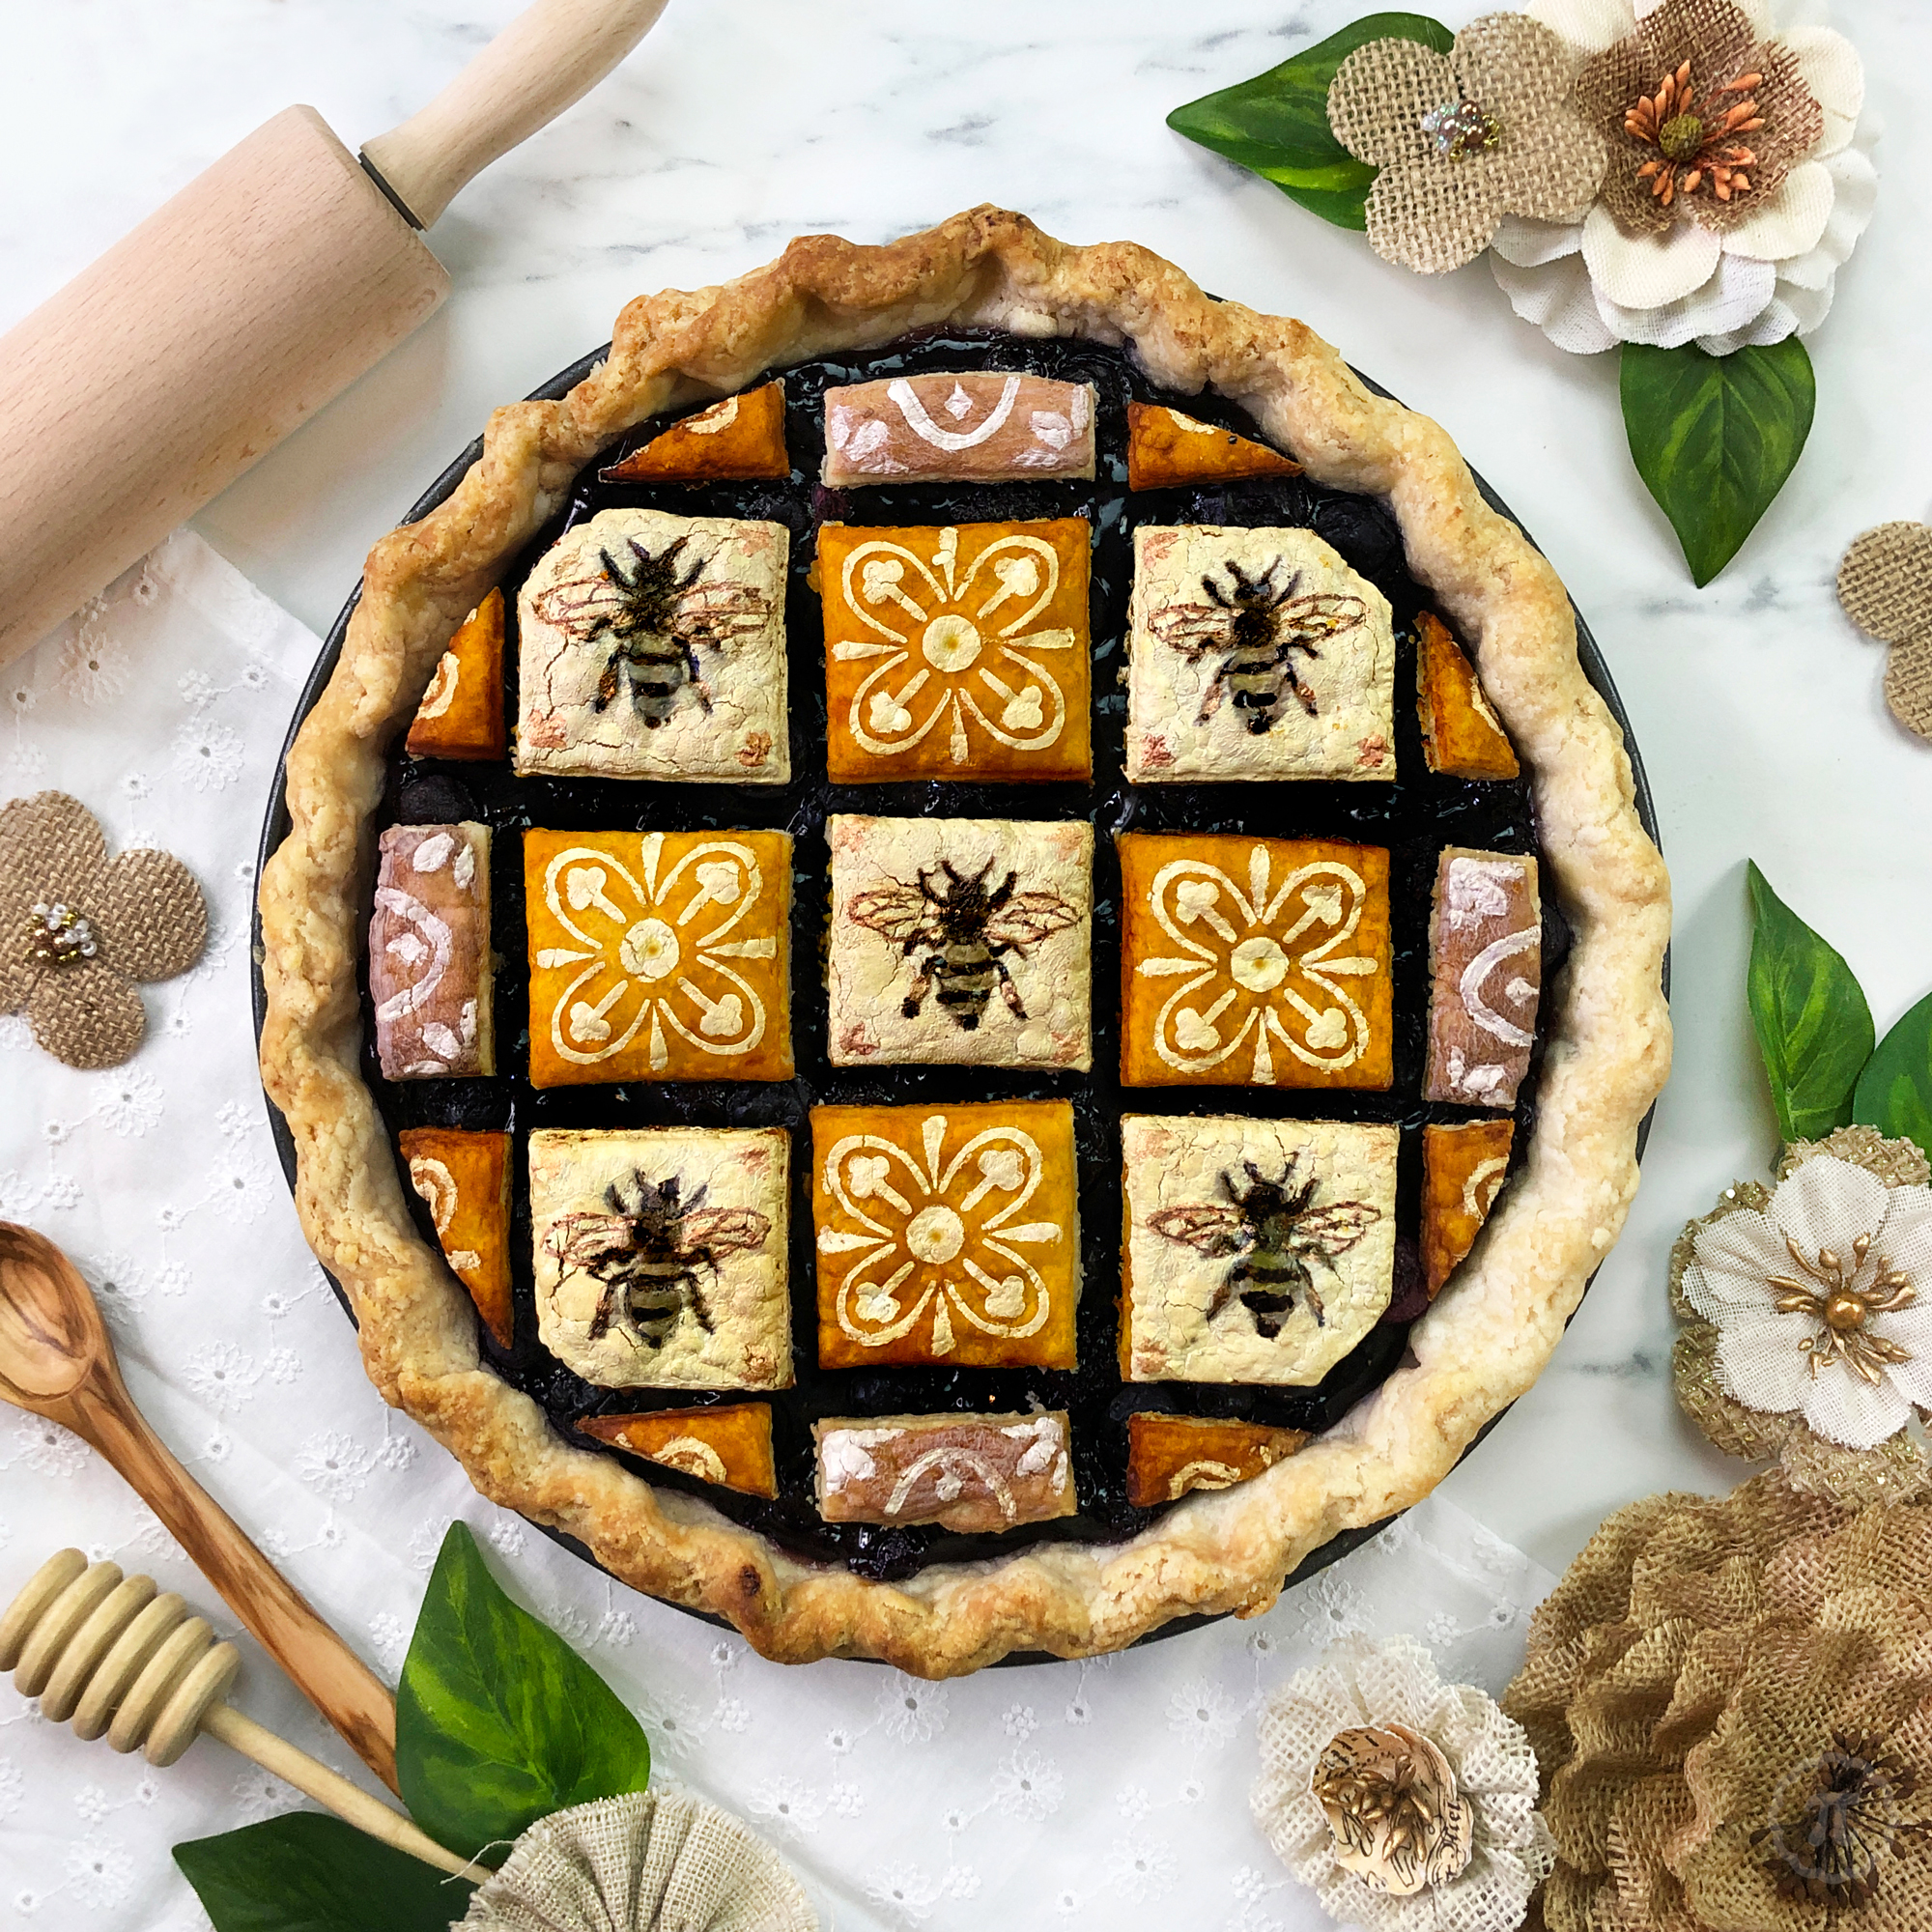 Pie with stenciled pattern of bees